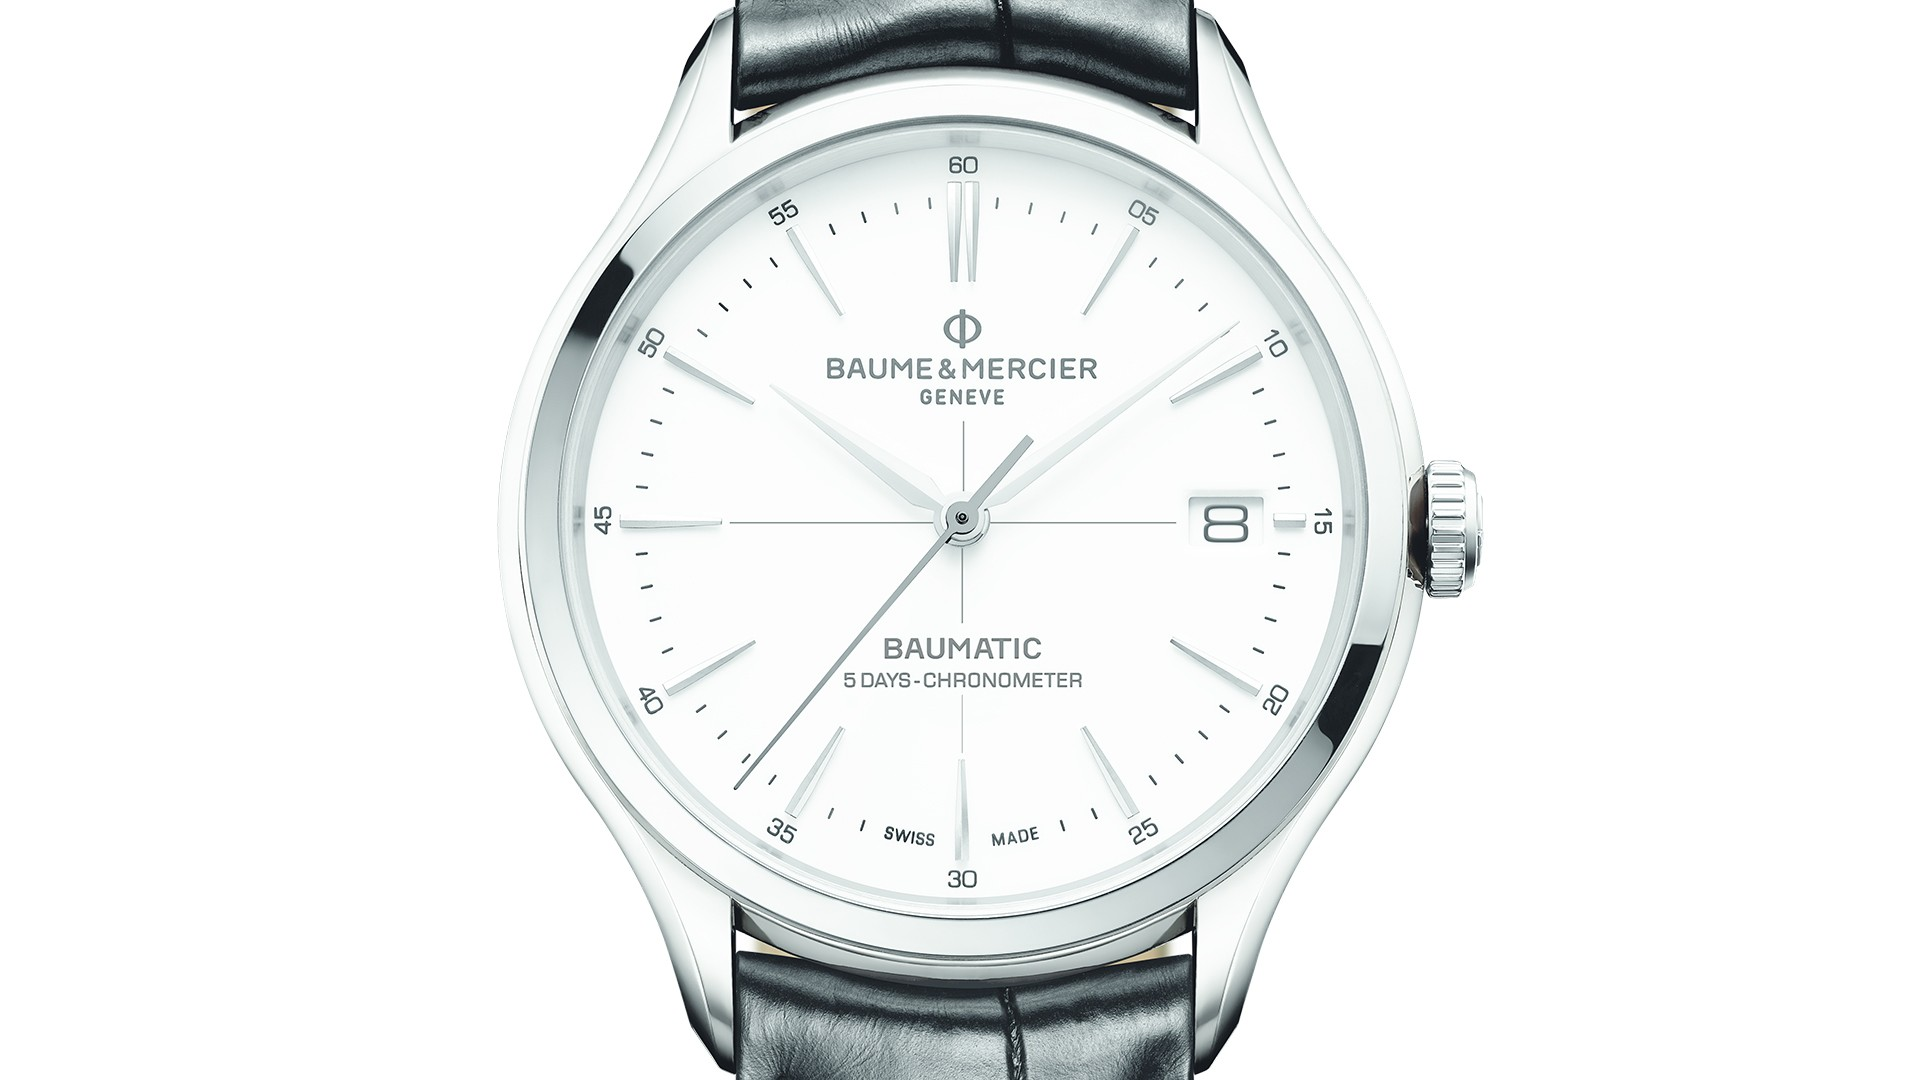 Baume et Mercier Clifton Baumatic five-day chronometer watch, SIHH 2018